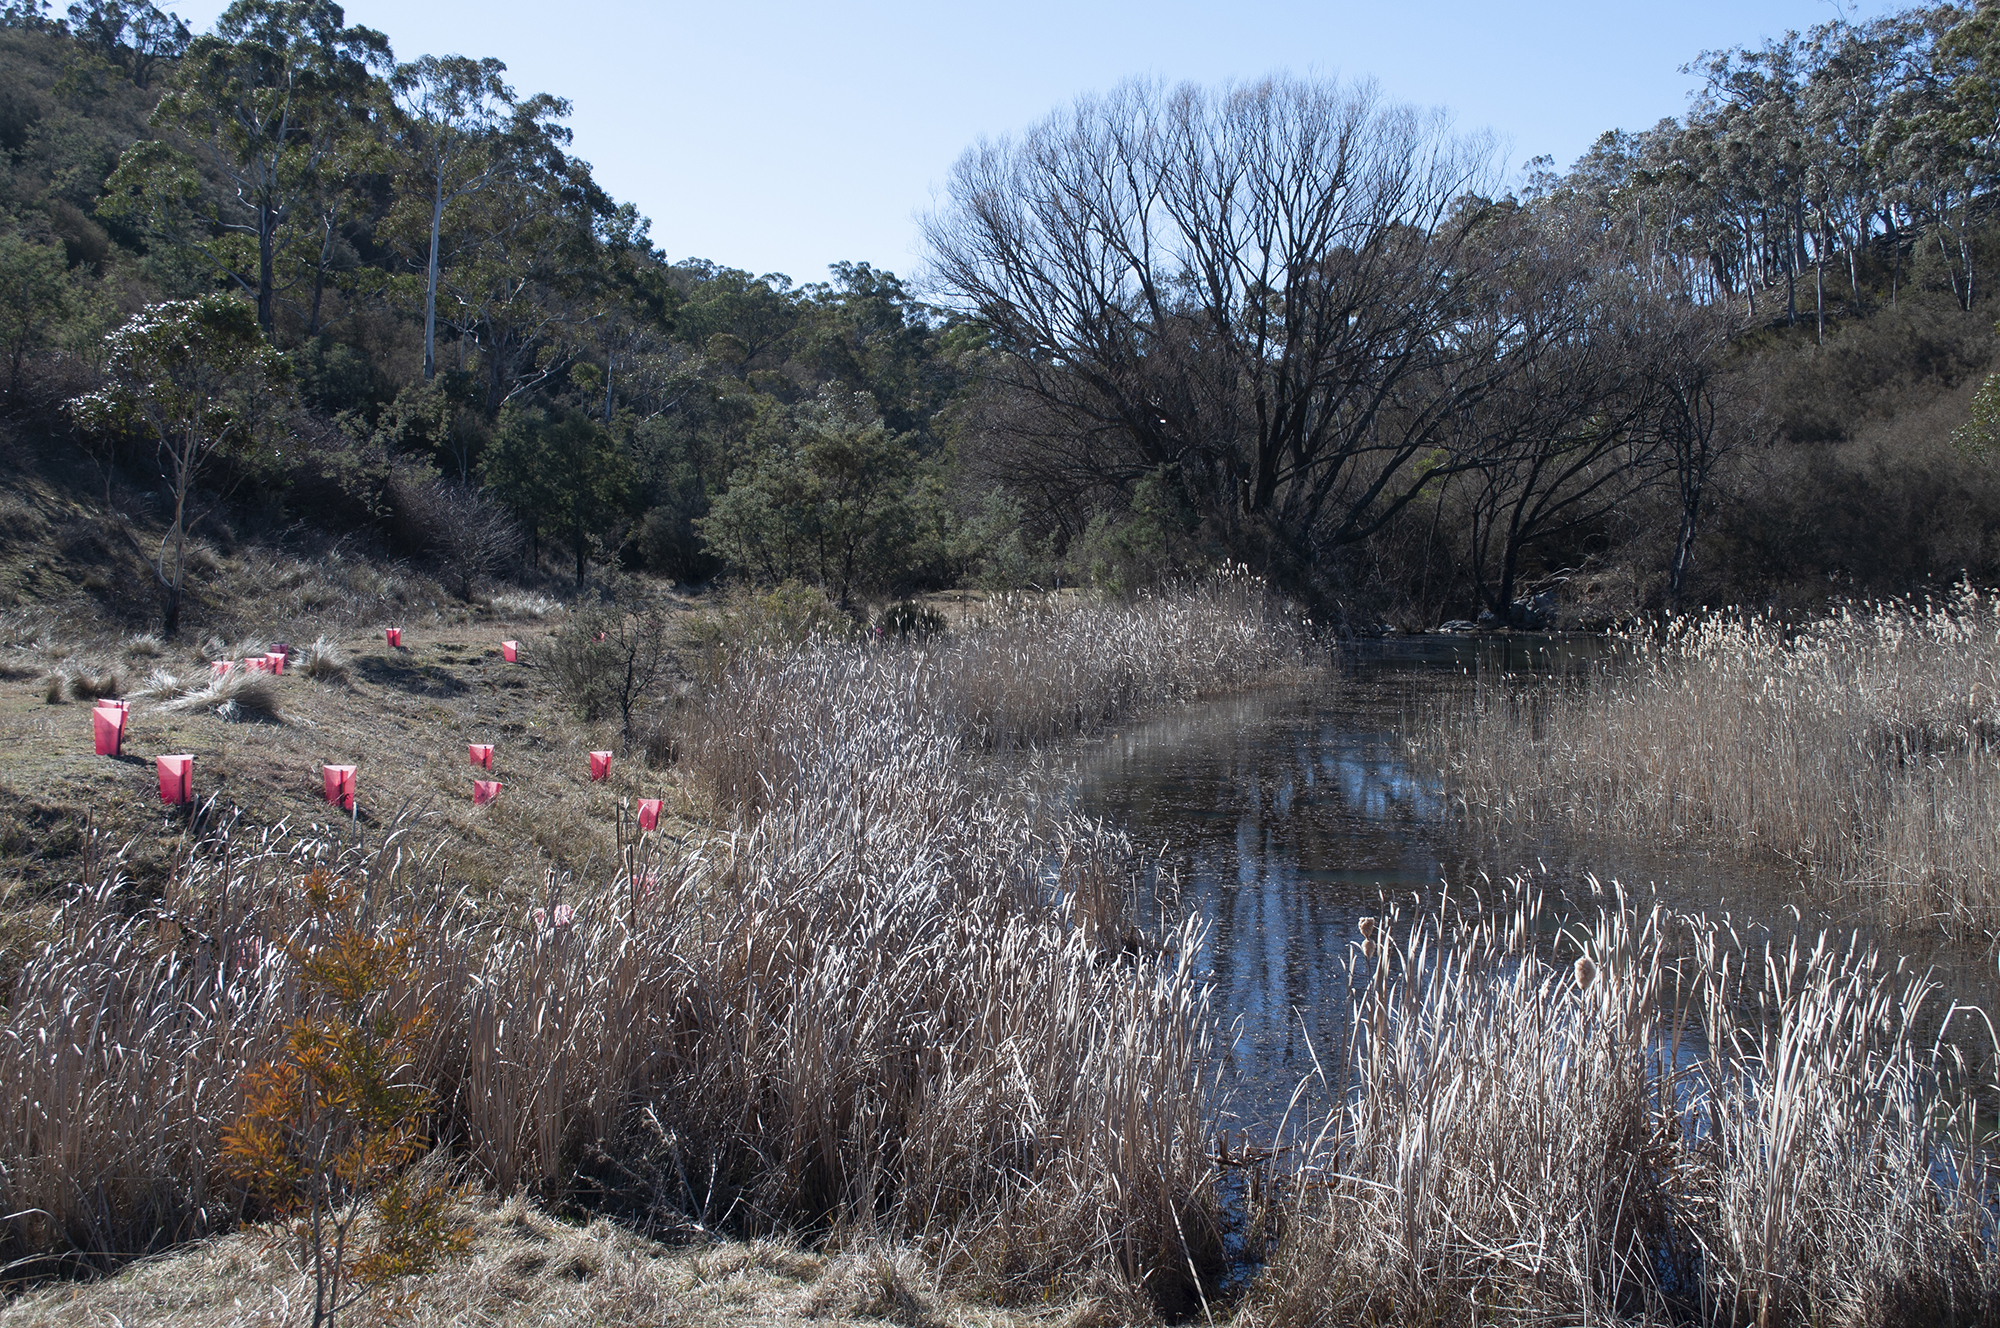 Peter's Pond is still holding water, hydrating the surrounding landscape and trickling downstream.